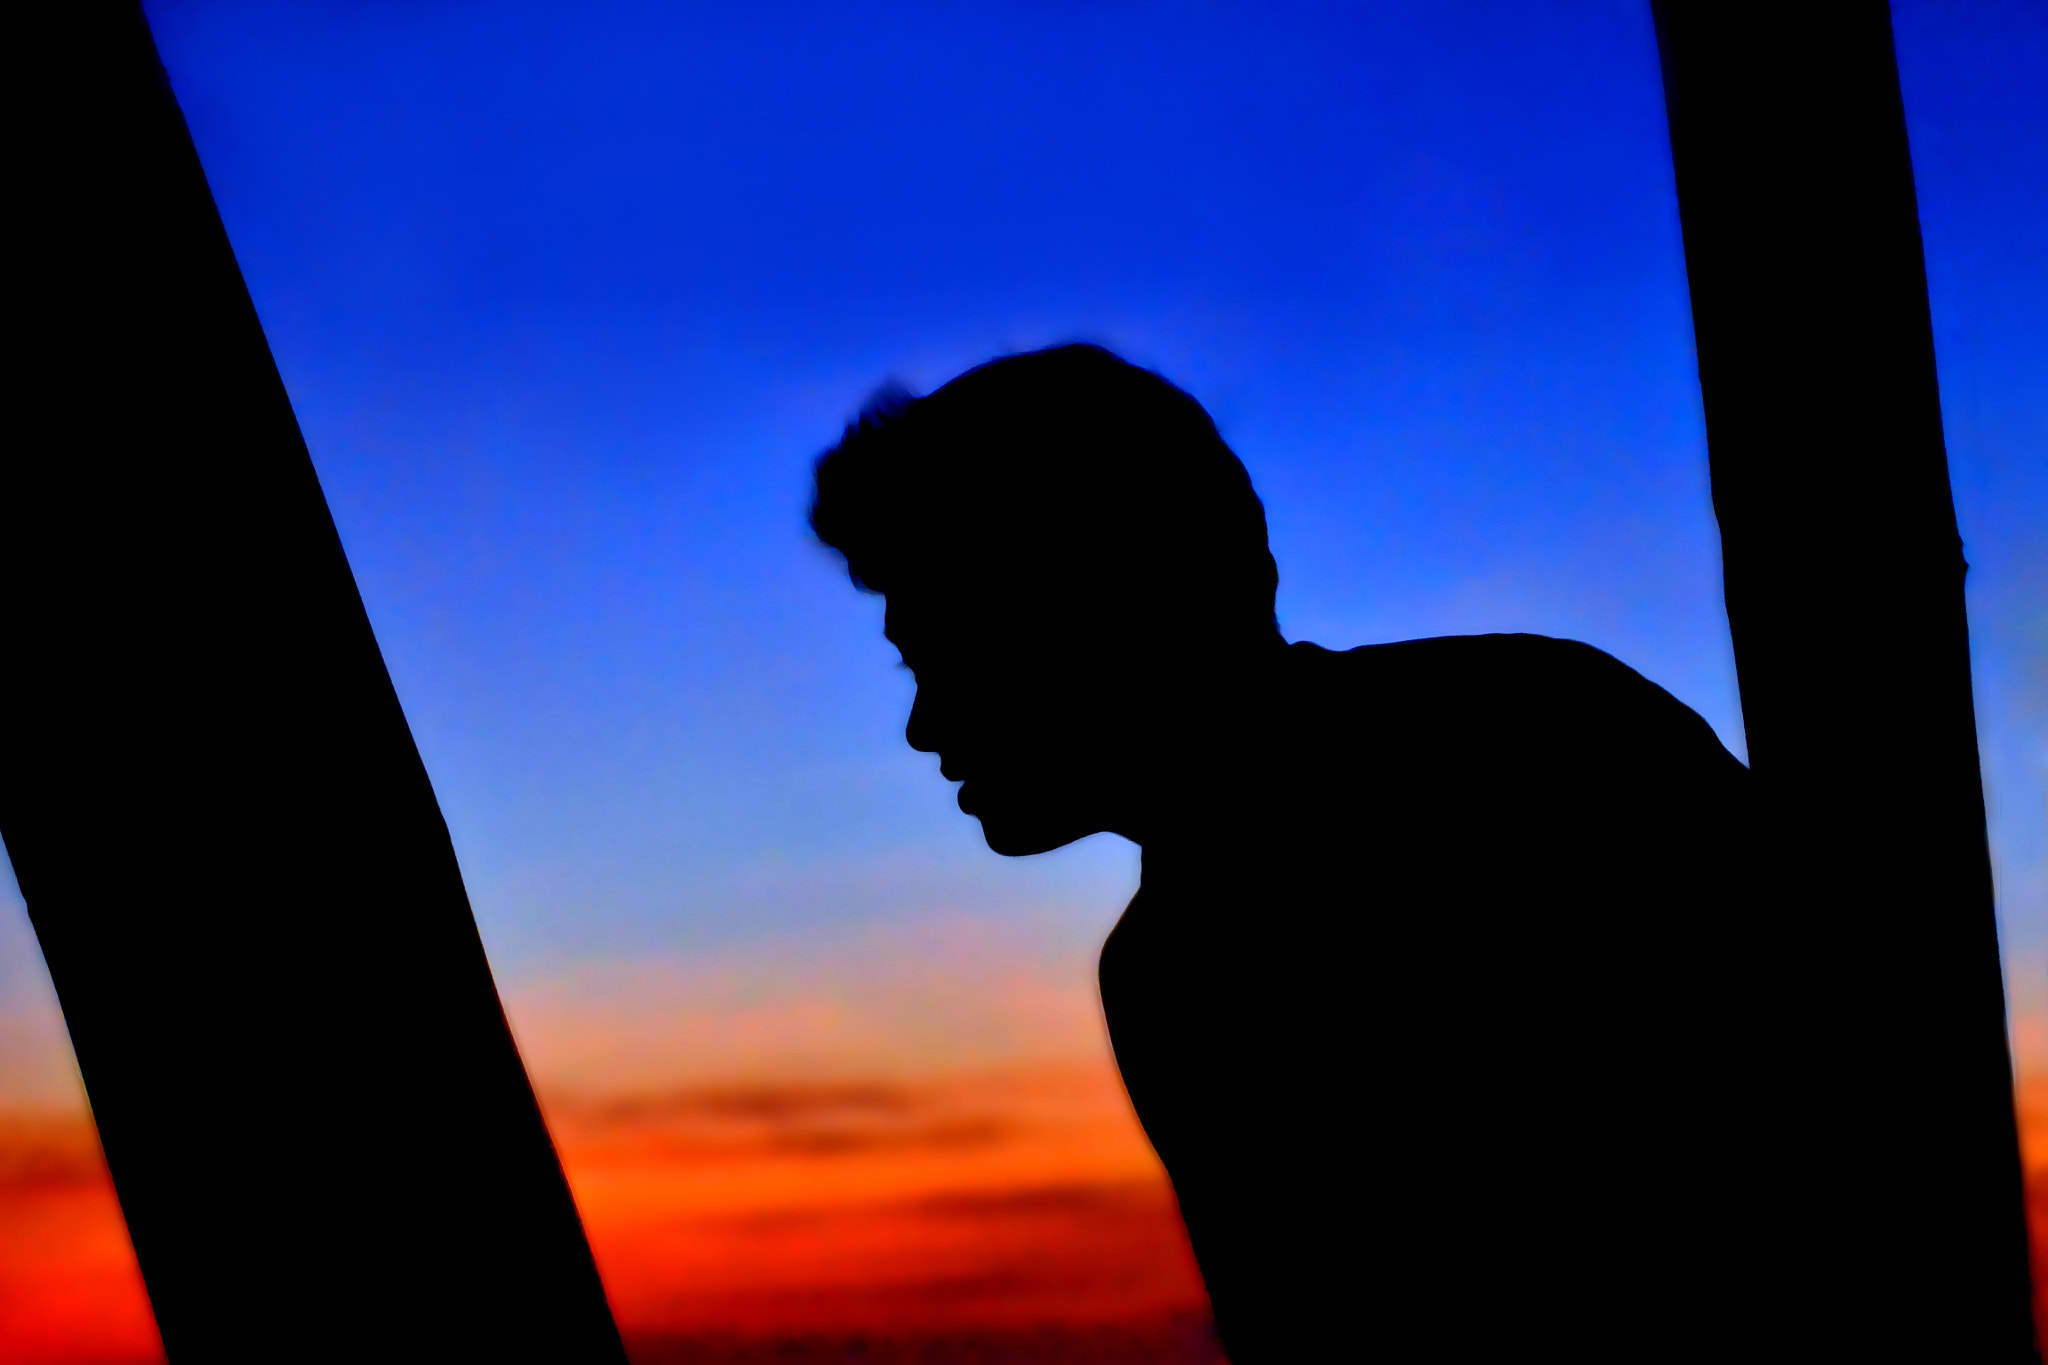 Photograph The Man in a Silhouette by Wilfredo Lumagbas Jr. on 500px